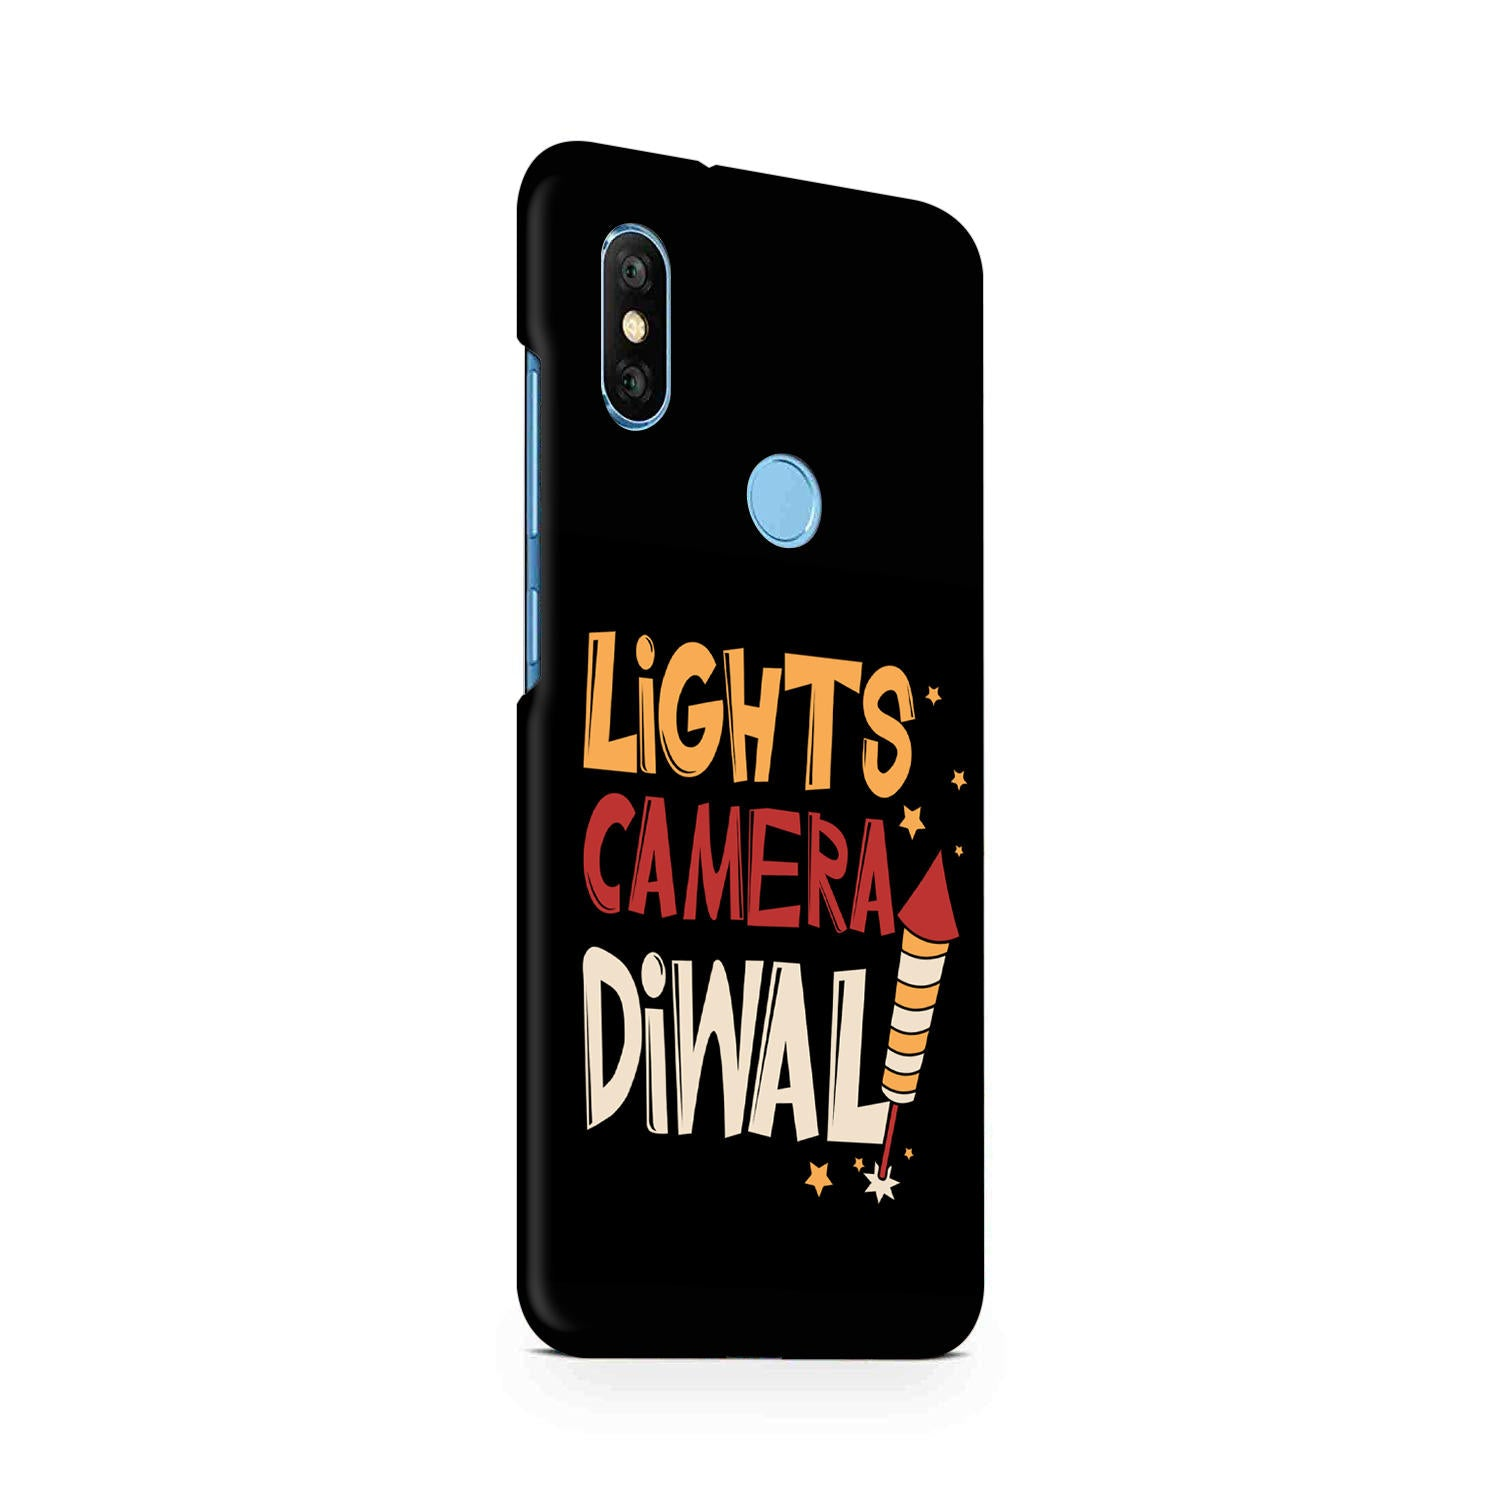 Lights Camera Diwali Enjoy Festival Of Light RedMi Note 6 Pro Mobile Cover Case - MADANYU